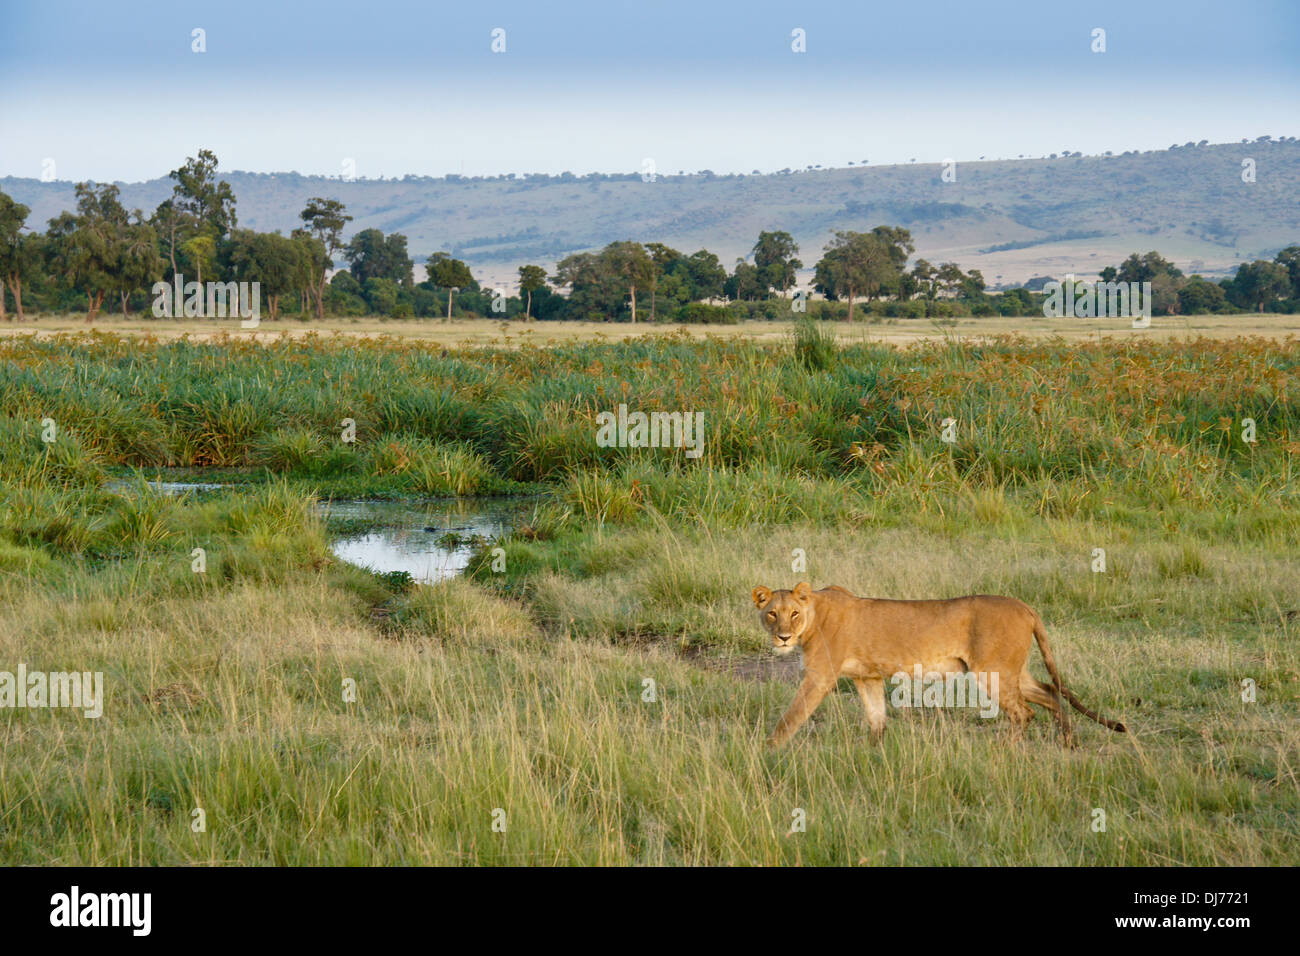 Female lion walking in Musiara Marsh, Masai Mara, Kenya - Stock Image